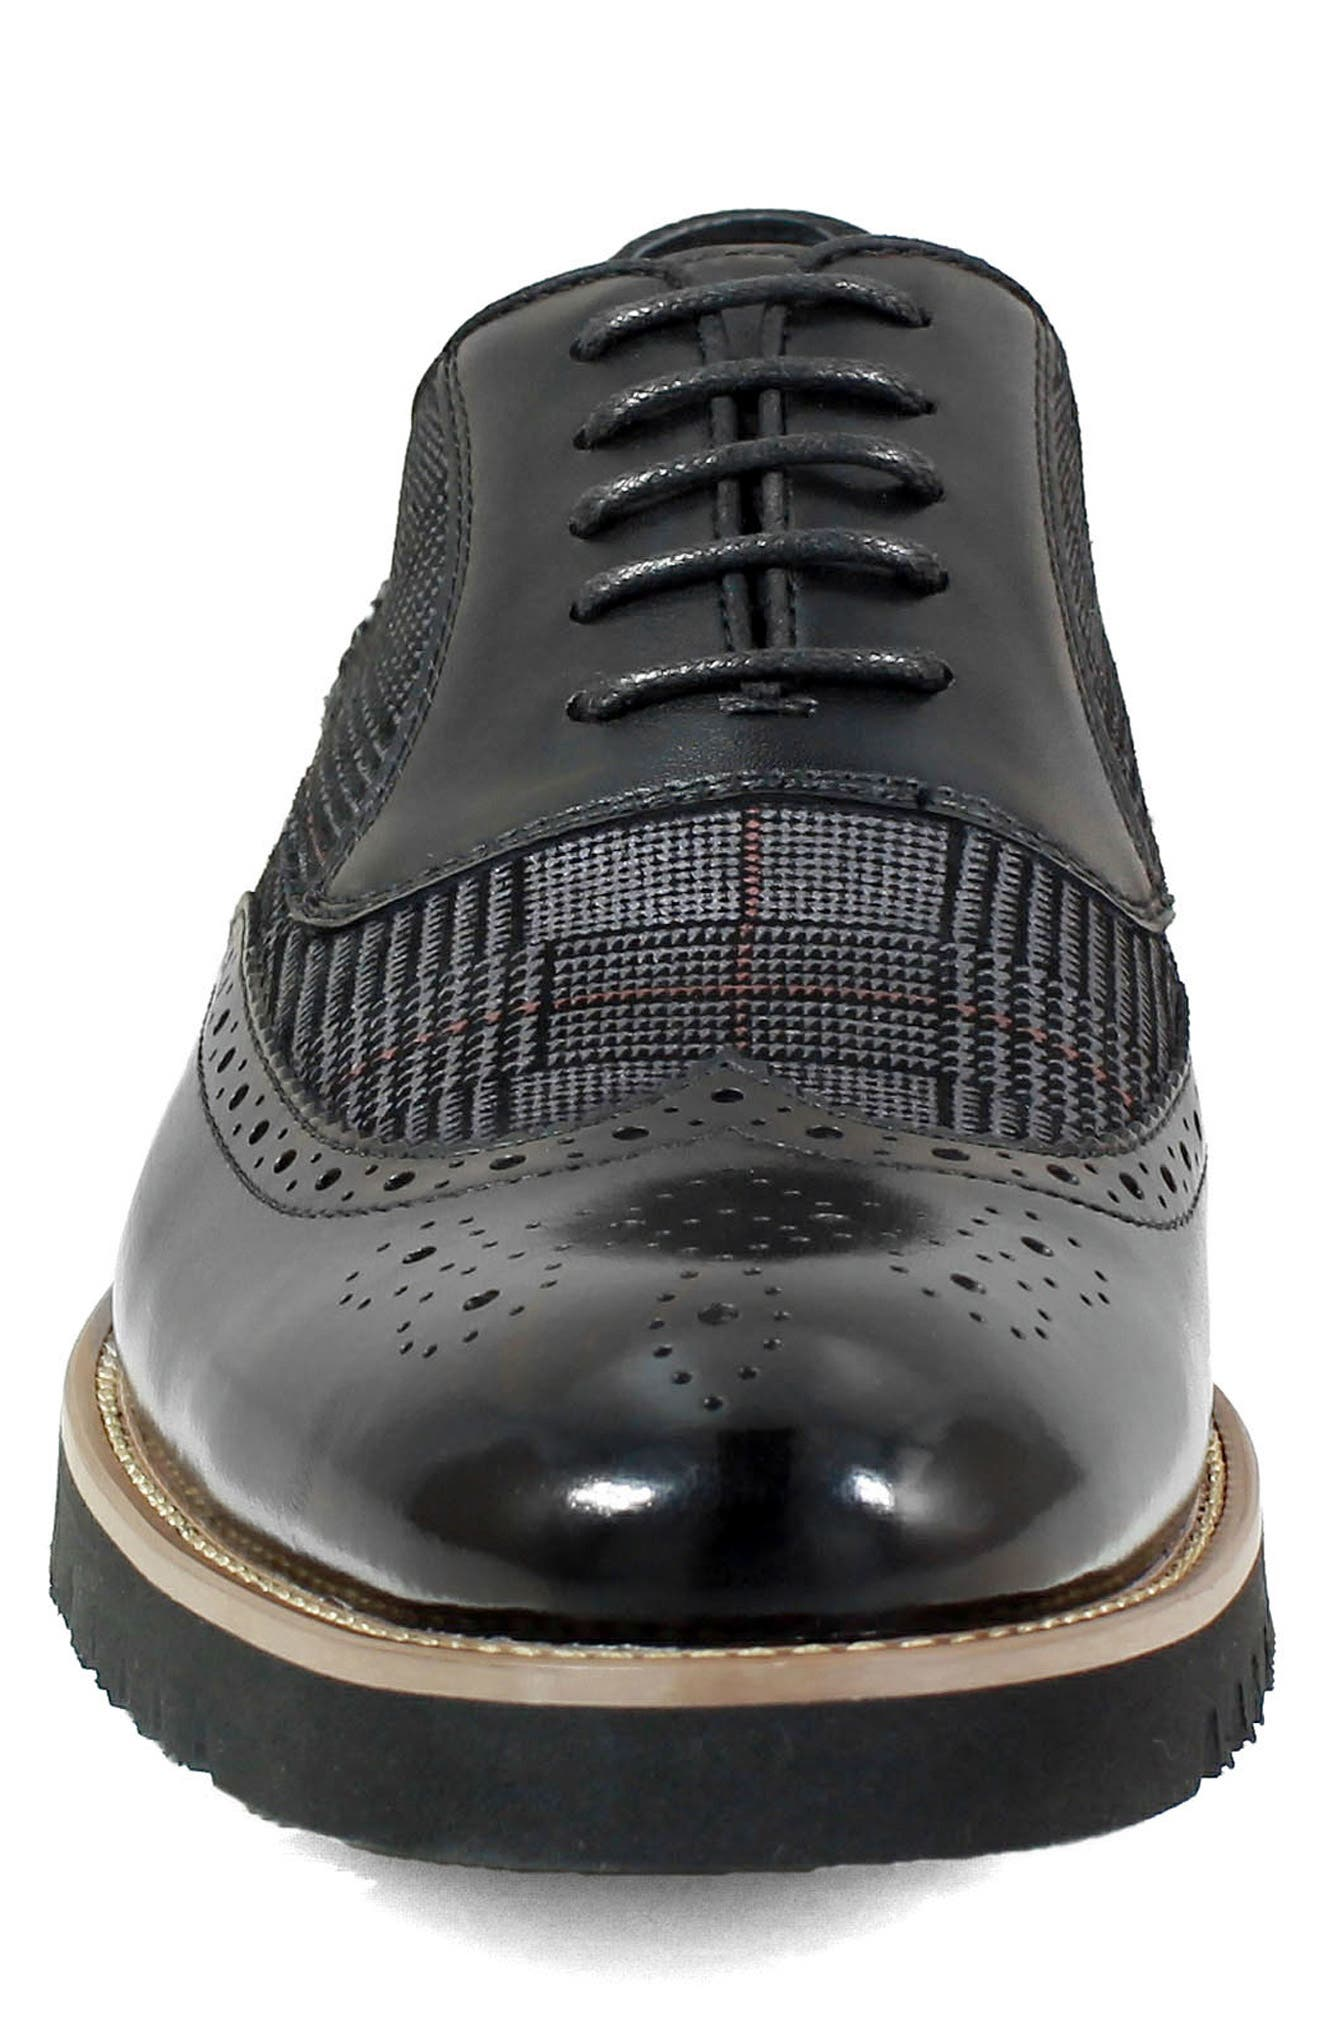 Baxley Glen Plaid Wingtip,                             Alternate thumbnail 4, color,                             BLACK LEATHER/ SUEDE